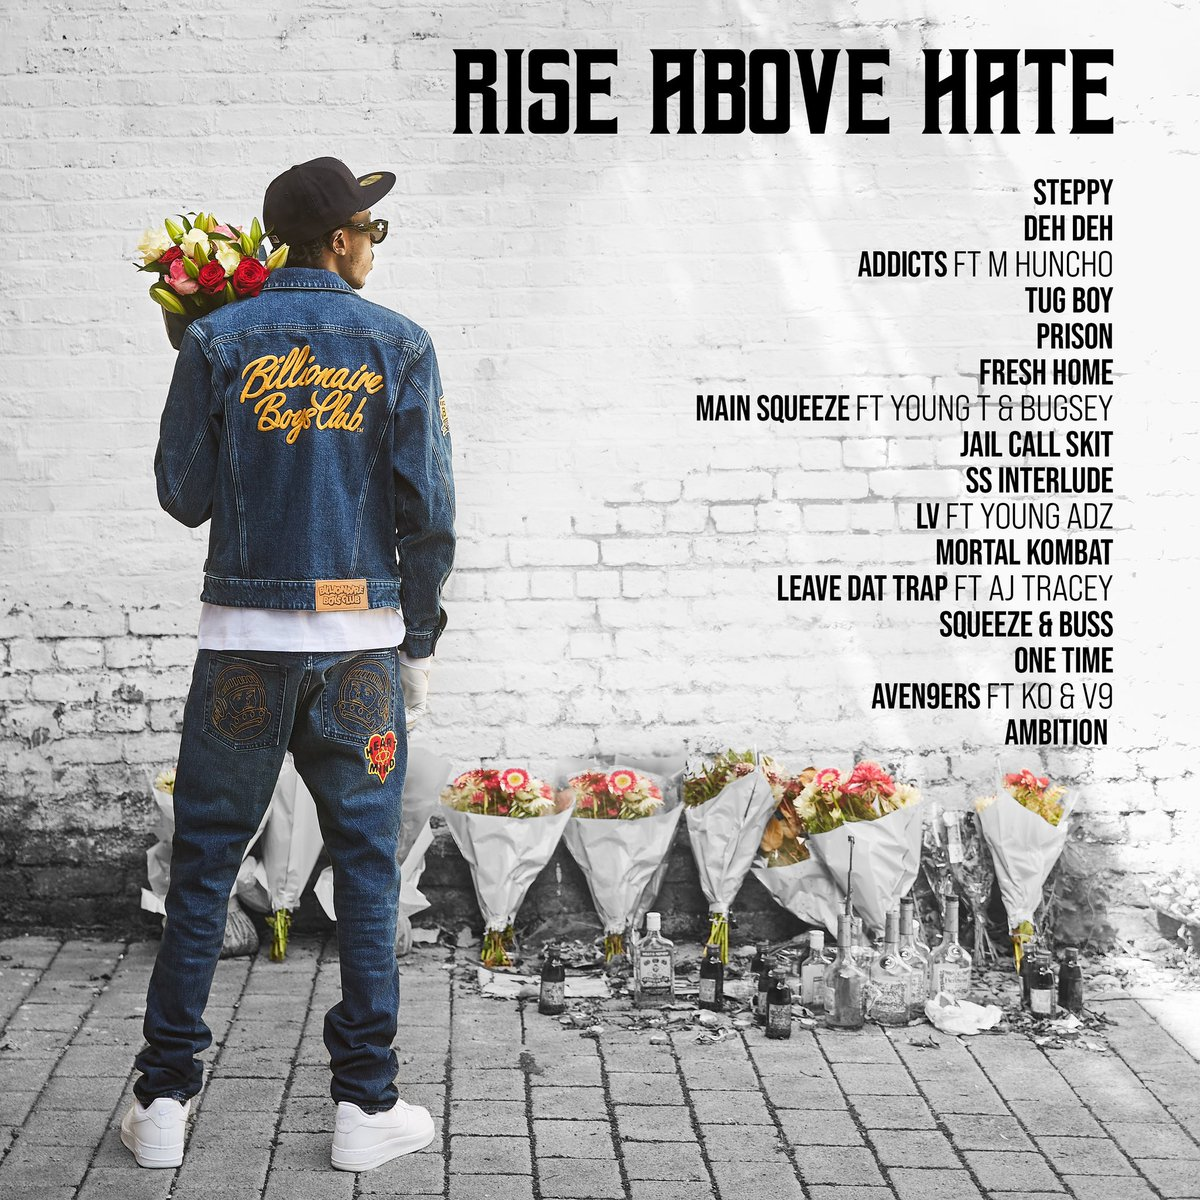 Rise Above Hate - 17/07/20 https://t.co/YyzSblASqh